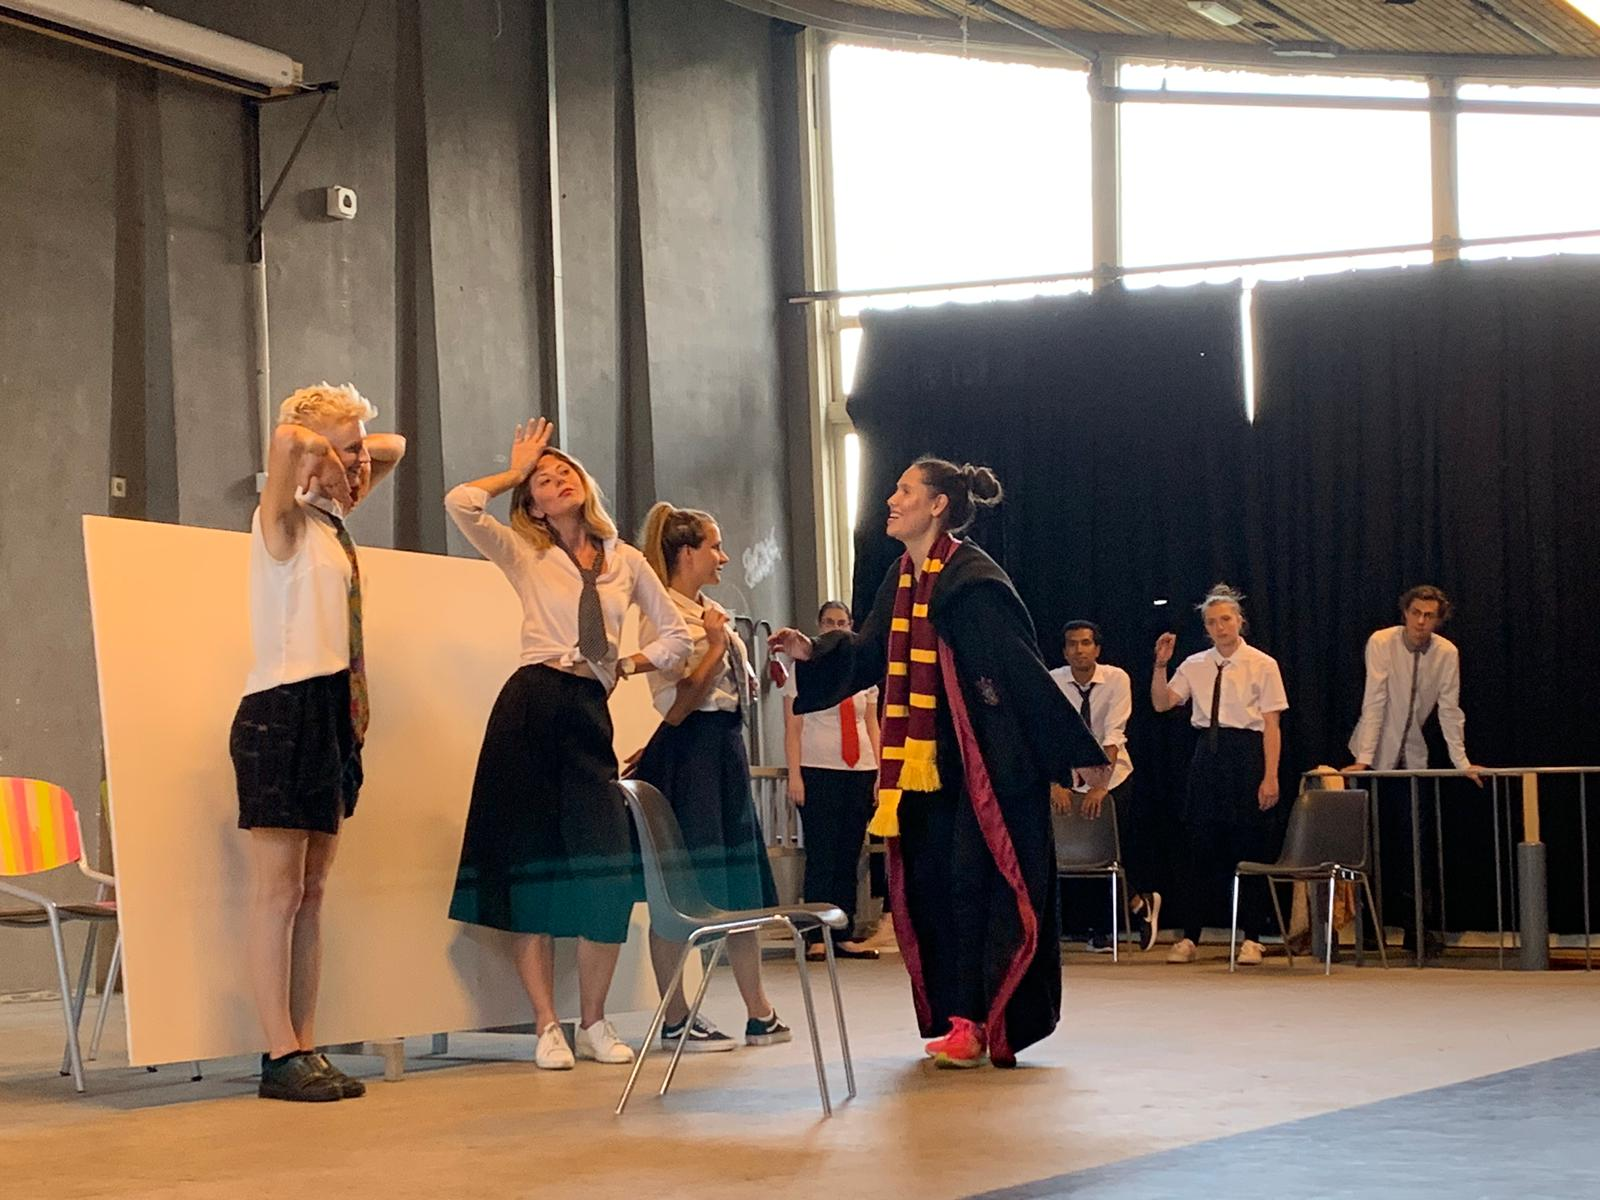 """From the show """"the magic school"""". Five actors on stage, three of them wear a white shirt and tie. The fourth one, who seems to be the teacher, approaches the students"""